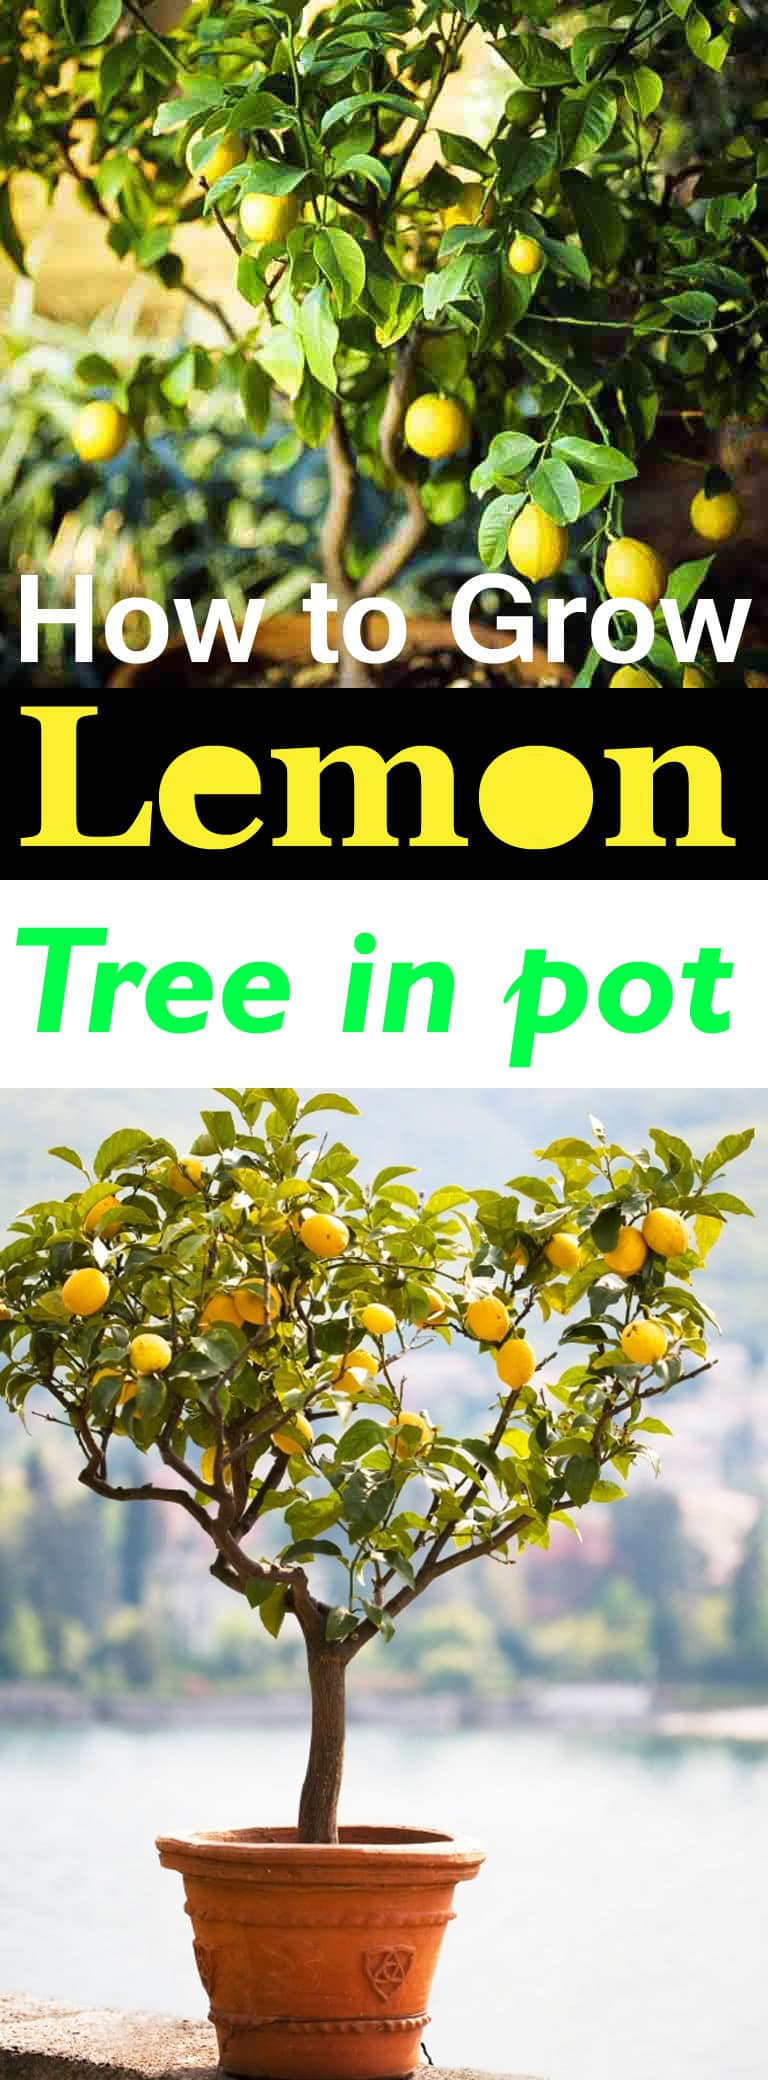 How To Grow It And How To Use It For: How To Grow A Lemon Tree In Pot